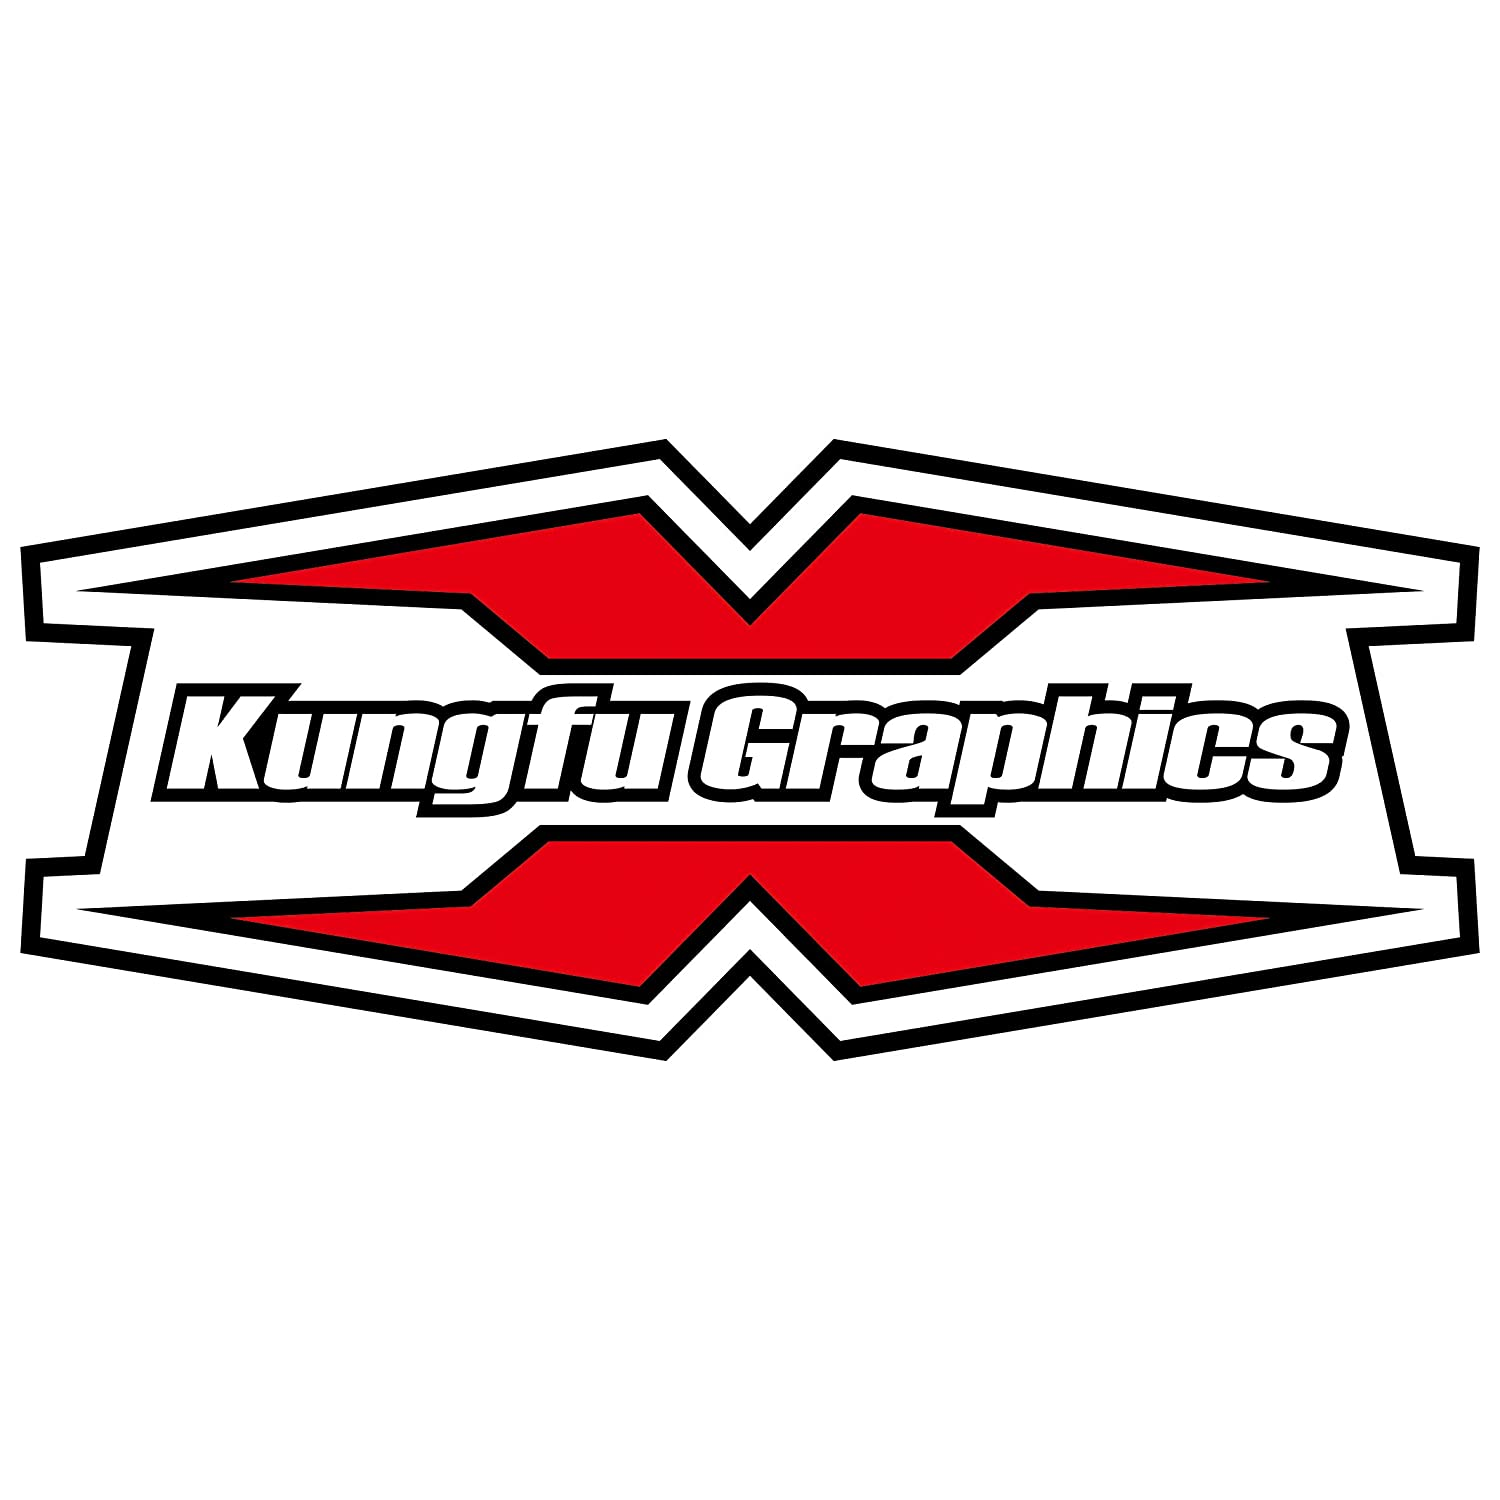 Yellow Kungfu Graphics Lucas Oil Custom Decal Kit for Suzuki DRZ400SM Supermoto 1999 2000 2001 2002 2003 2004 2005 2006 2007 2008 2009 2010 2011 2012 2013 2014 2015 2016 2017 2018 2019